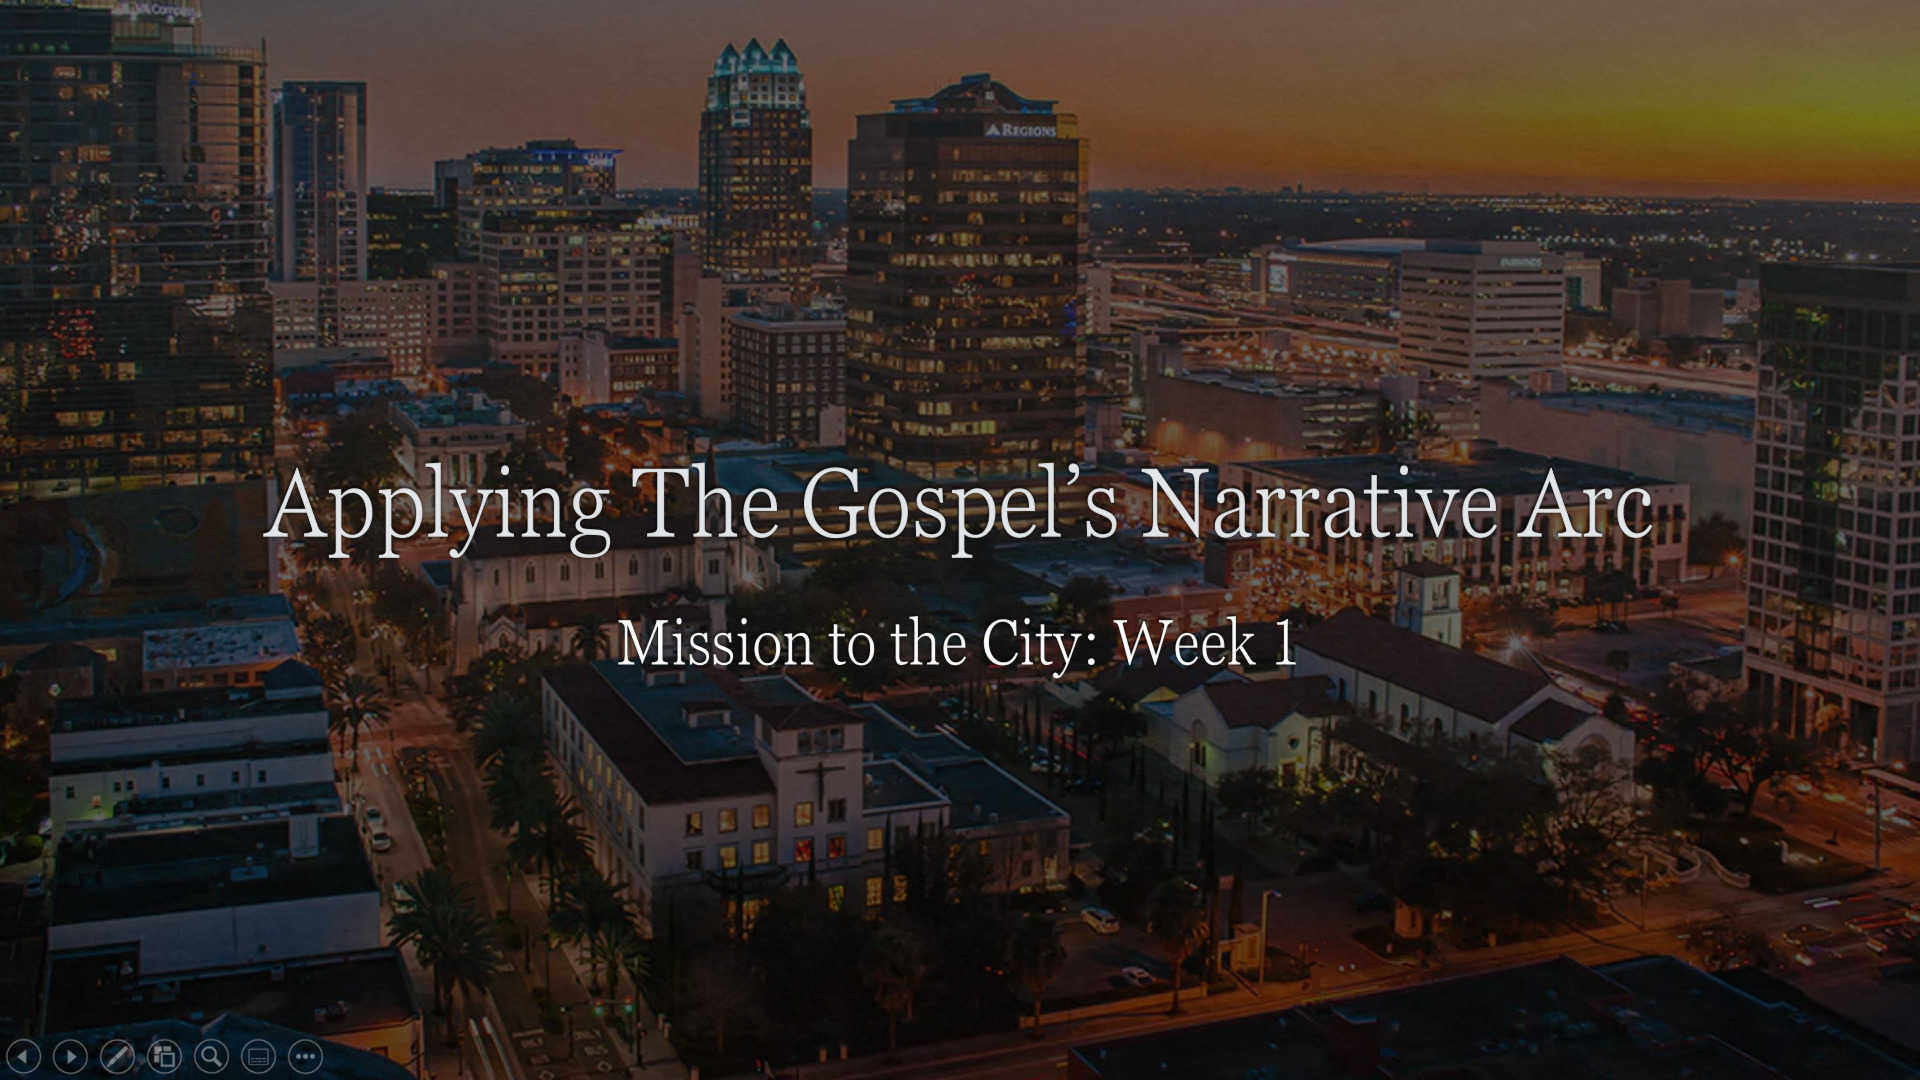 Mission to the City - Week 1